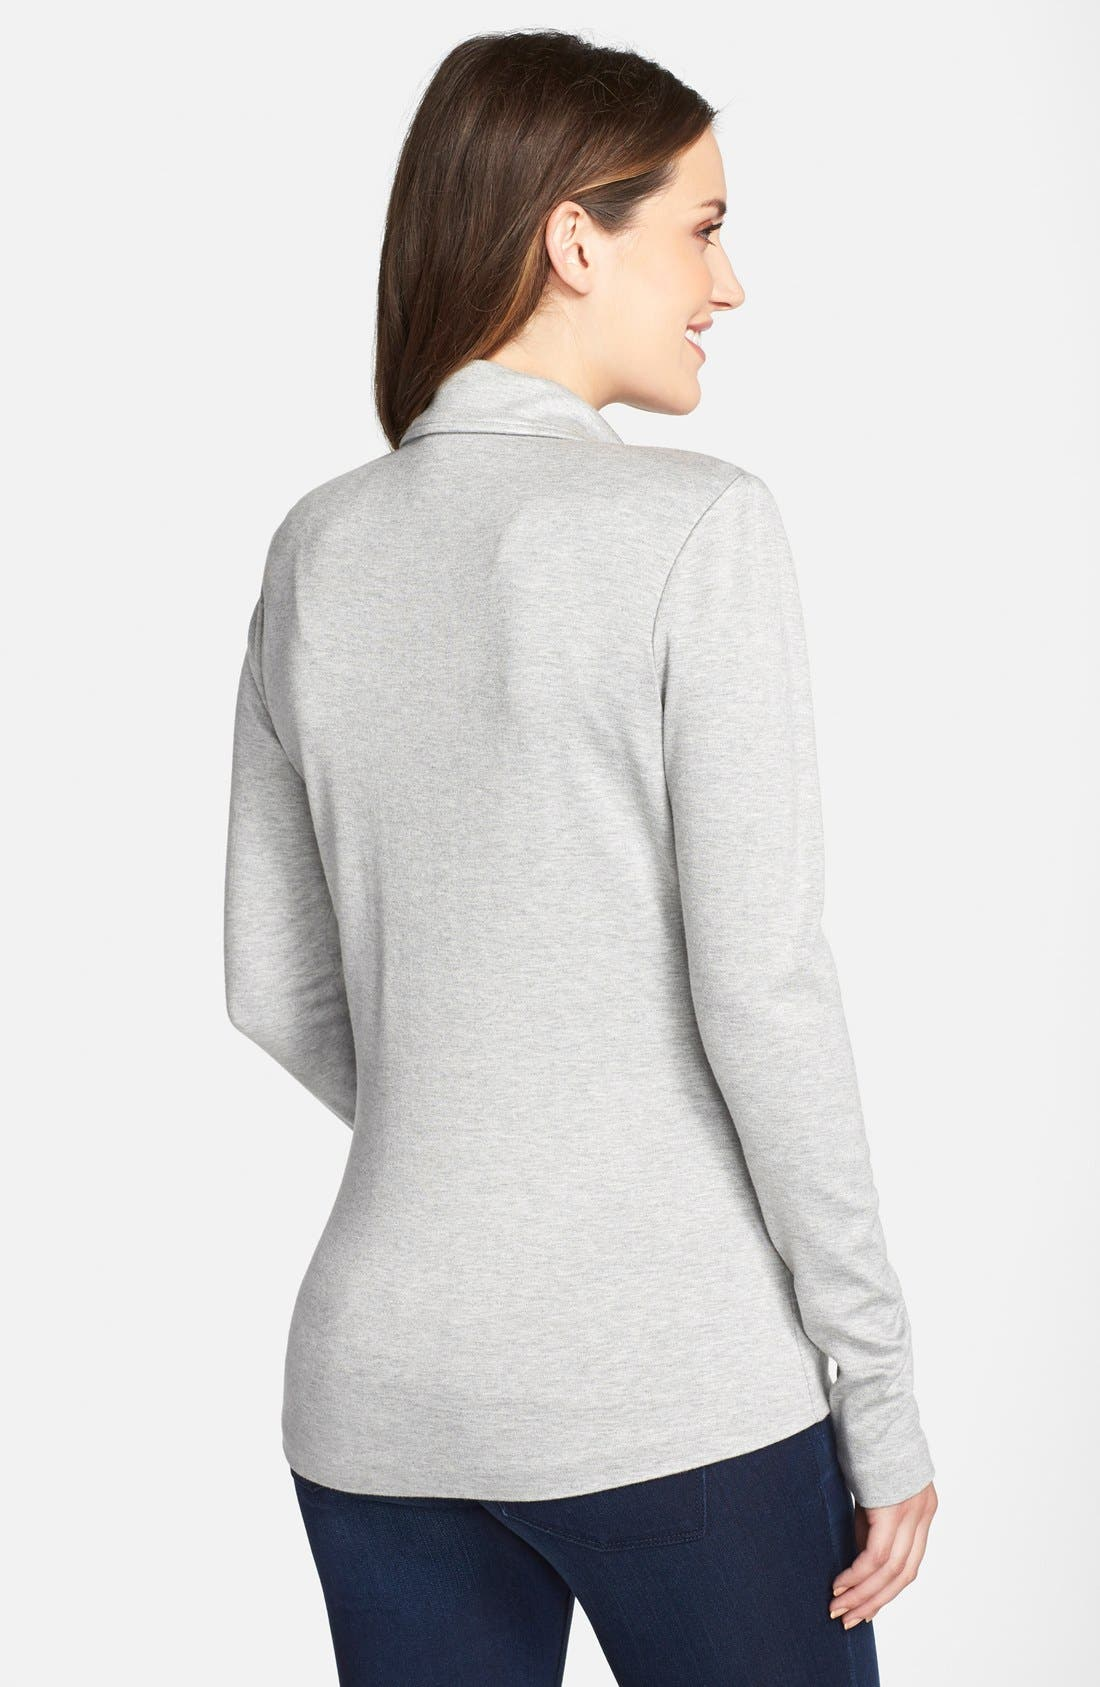 Essential Maternity Blazer,                             Alternate thumbnail 4, color,                             HEATHER GREY